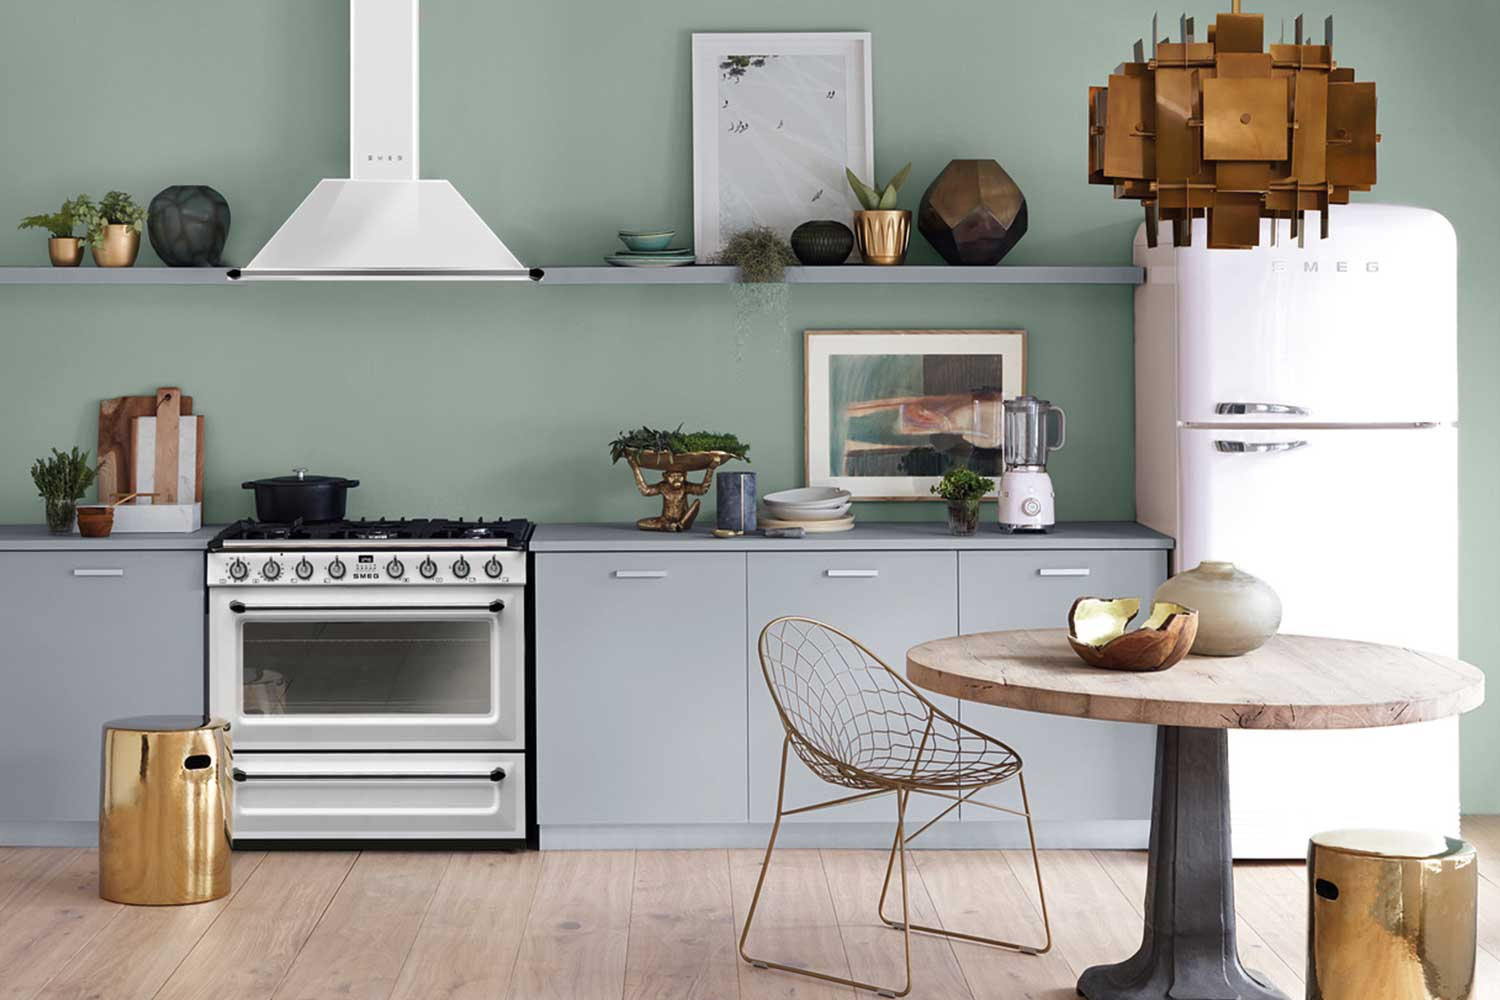 All White Kitchens With White Appliances The All White Kitchen Of Your Dreams Is Here With These